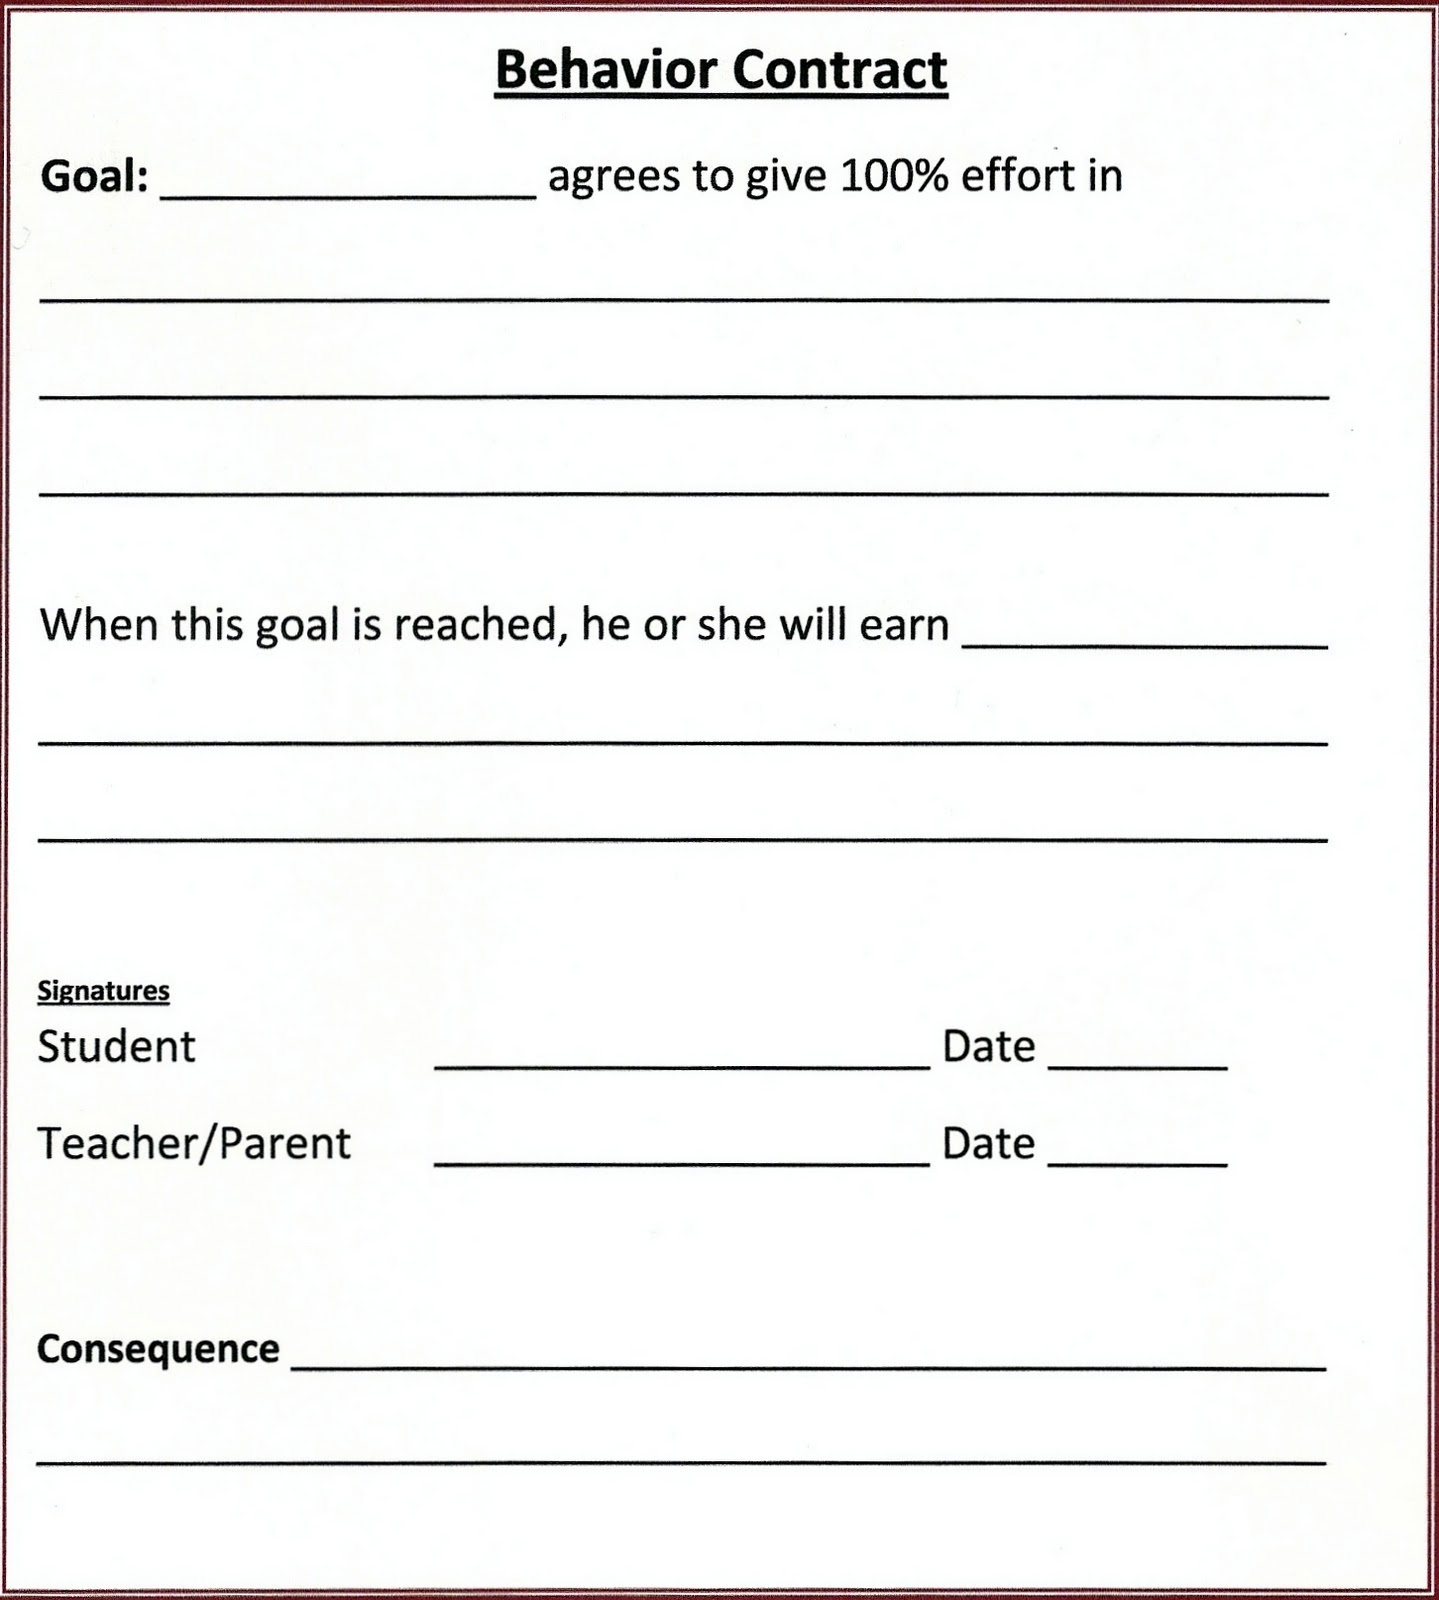 Priceless image in behavior contract printable